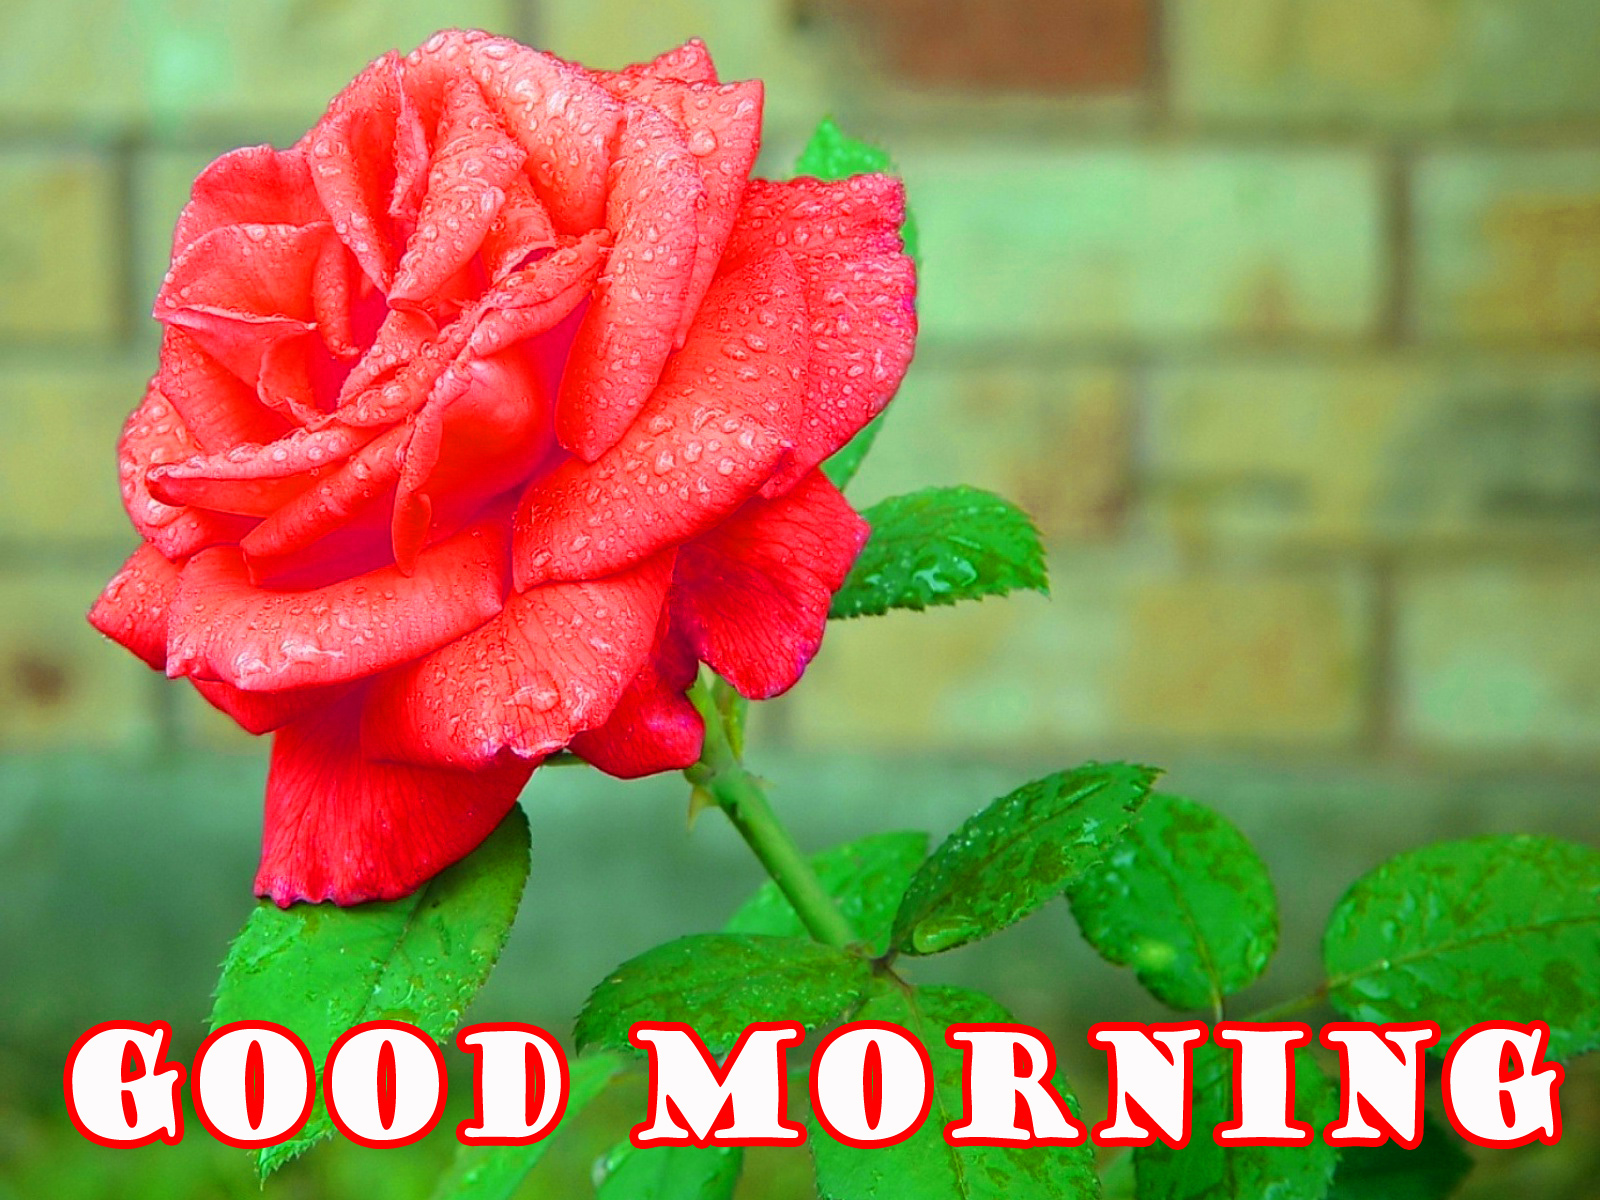 Good Morning Flowers Wallpaper Photo Download